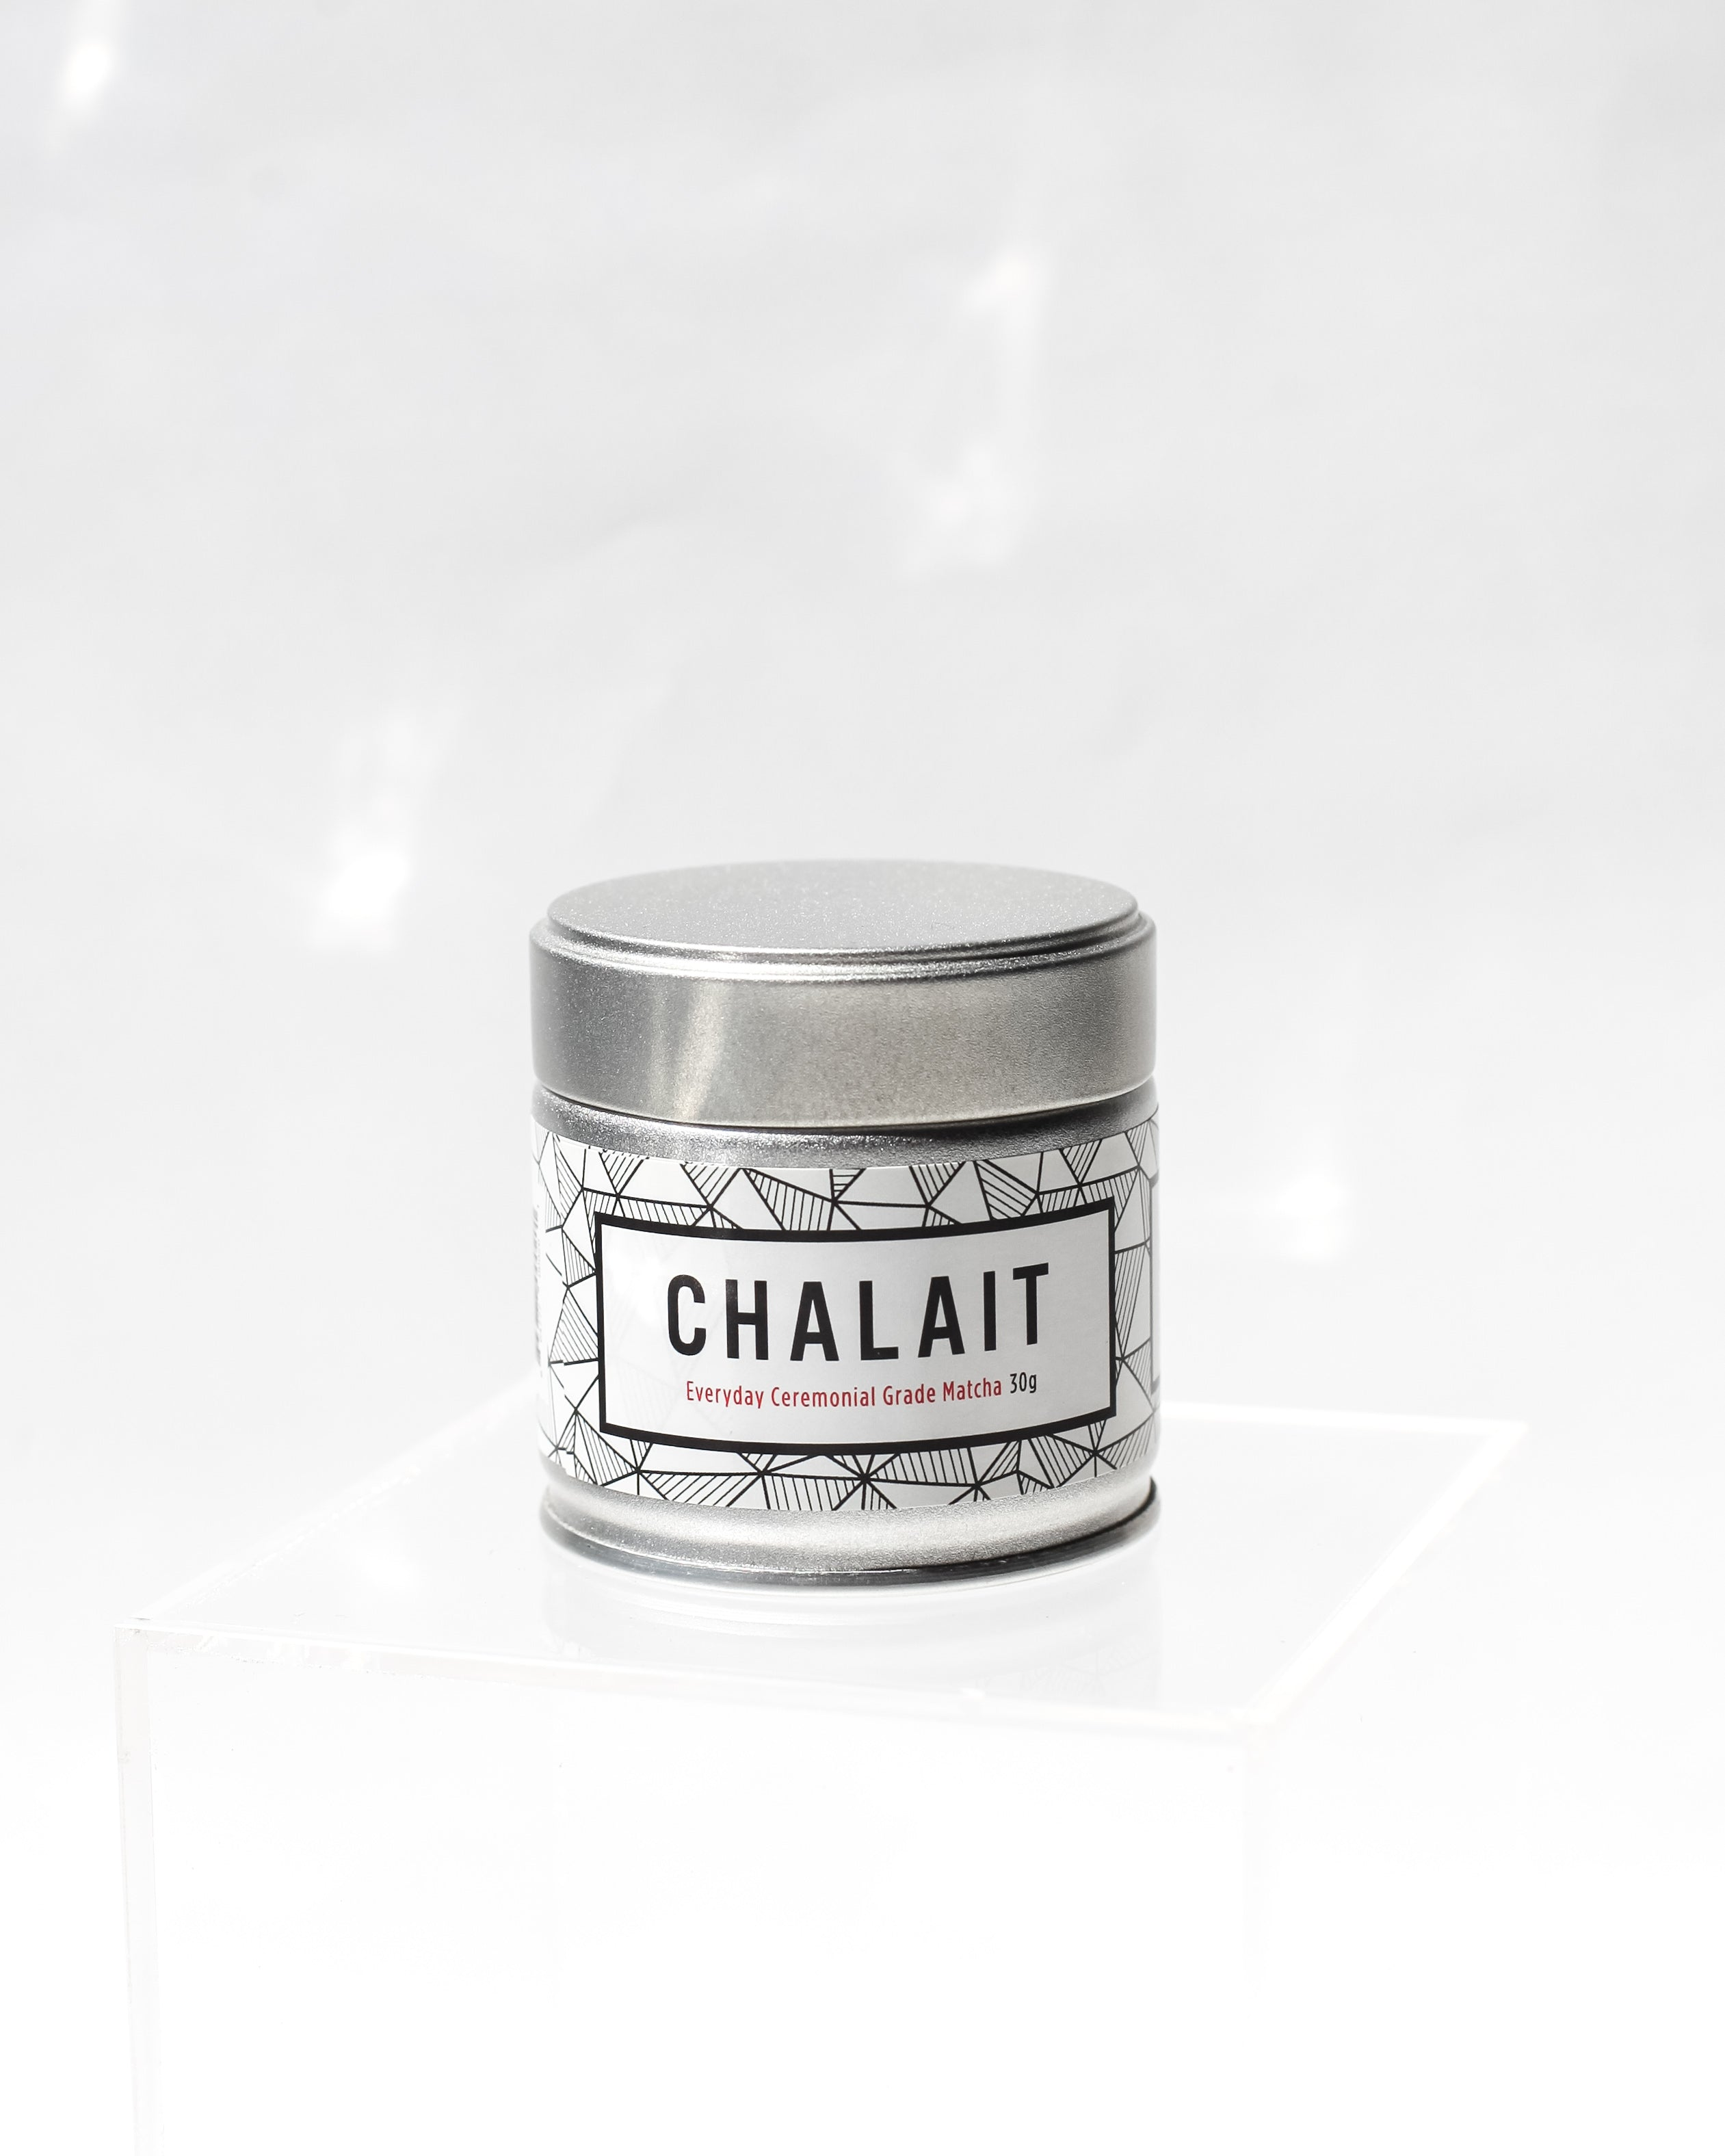 Chalait Ceremonial Matcha Green Tea Powder